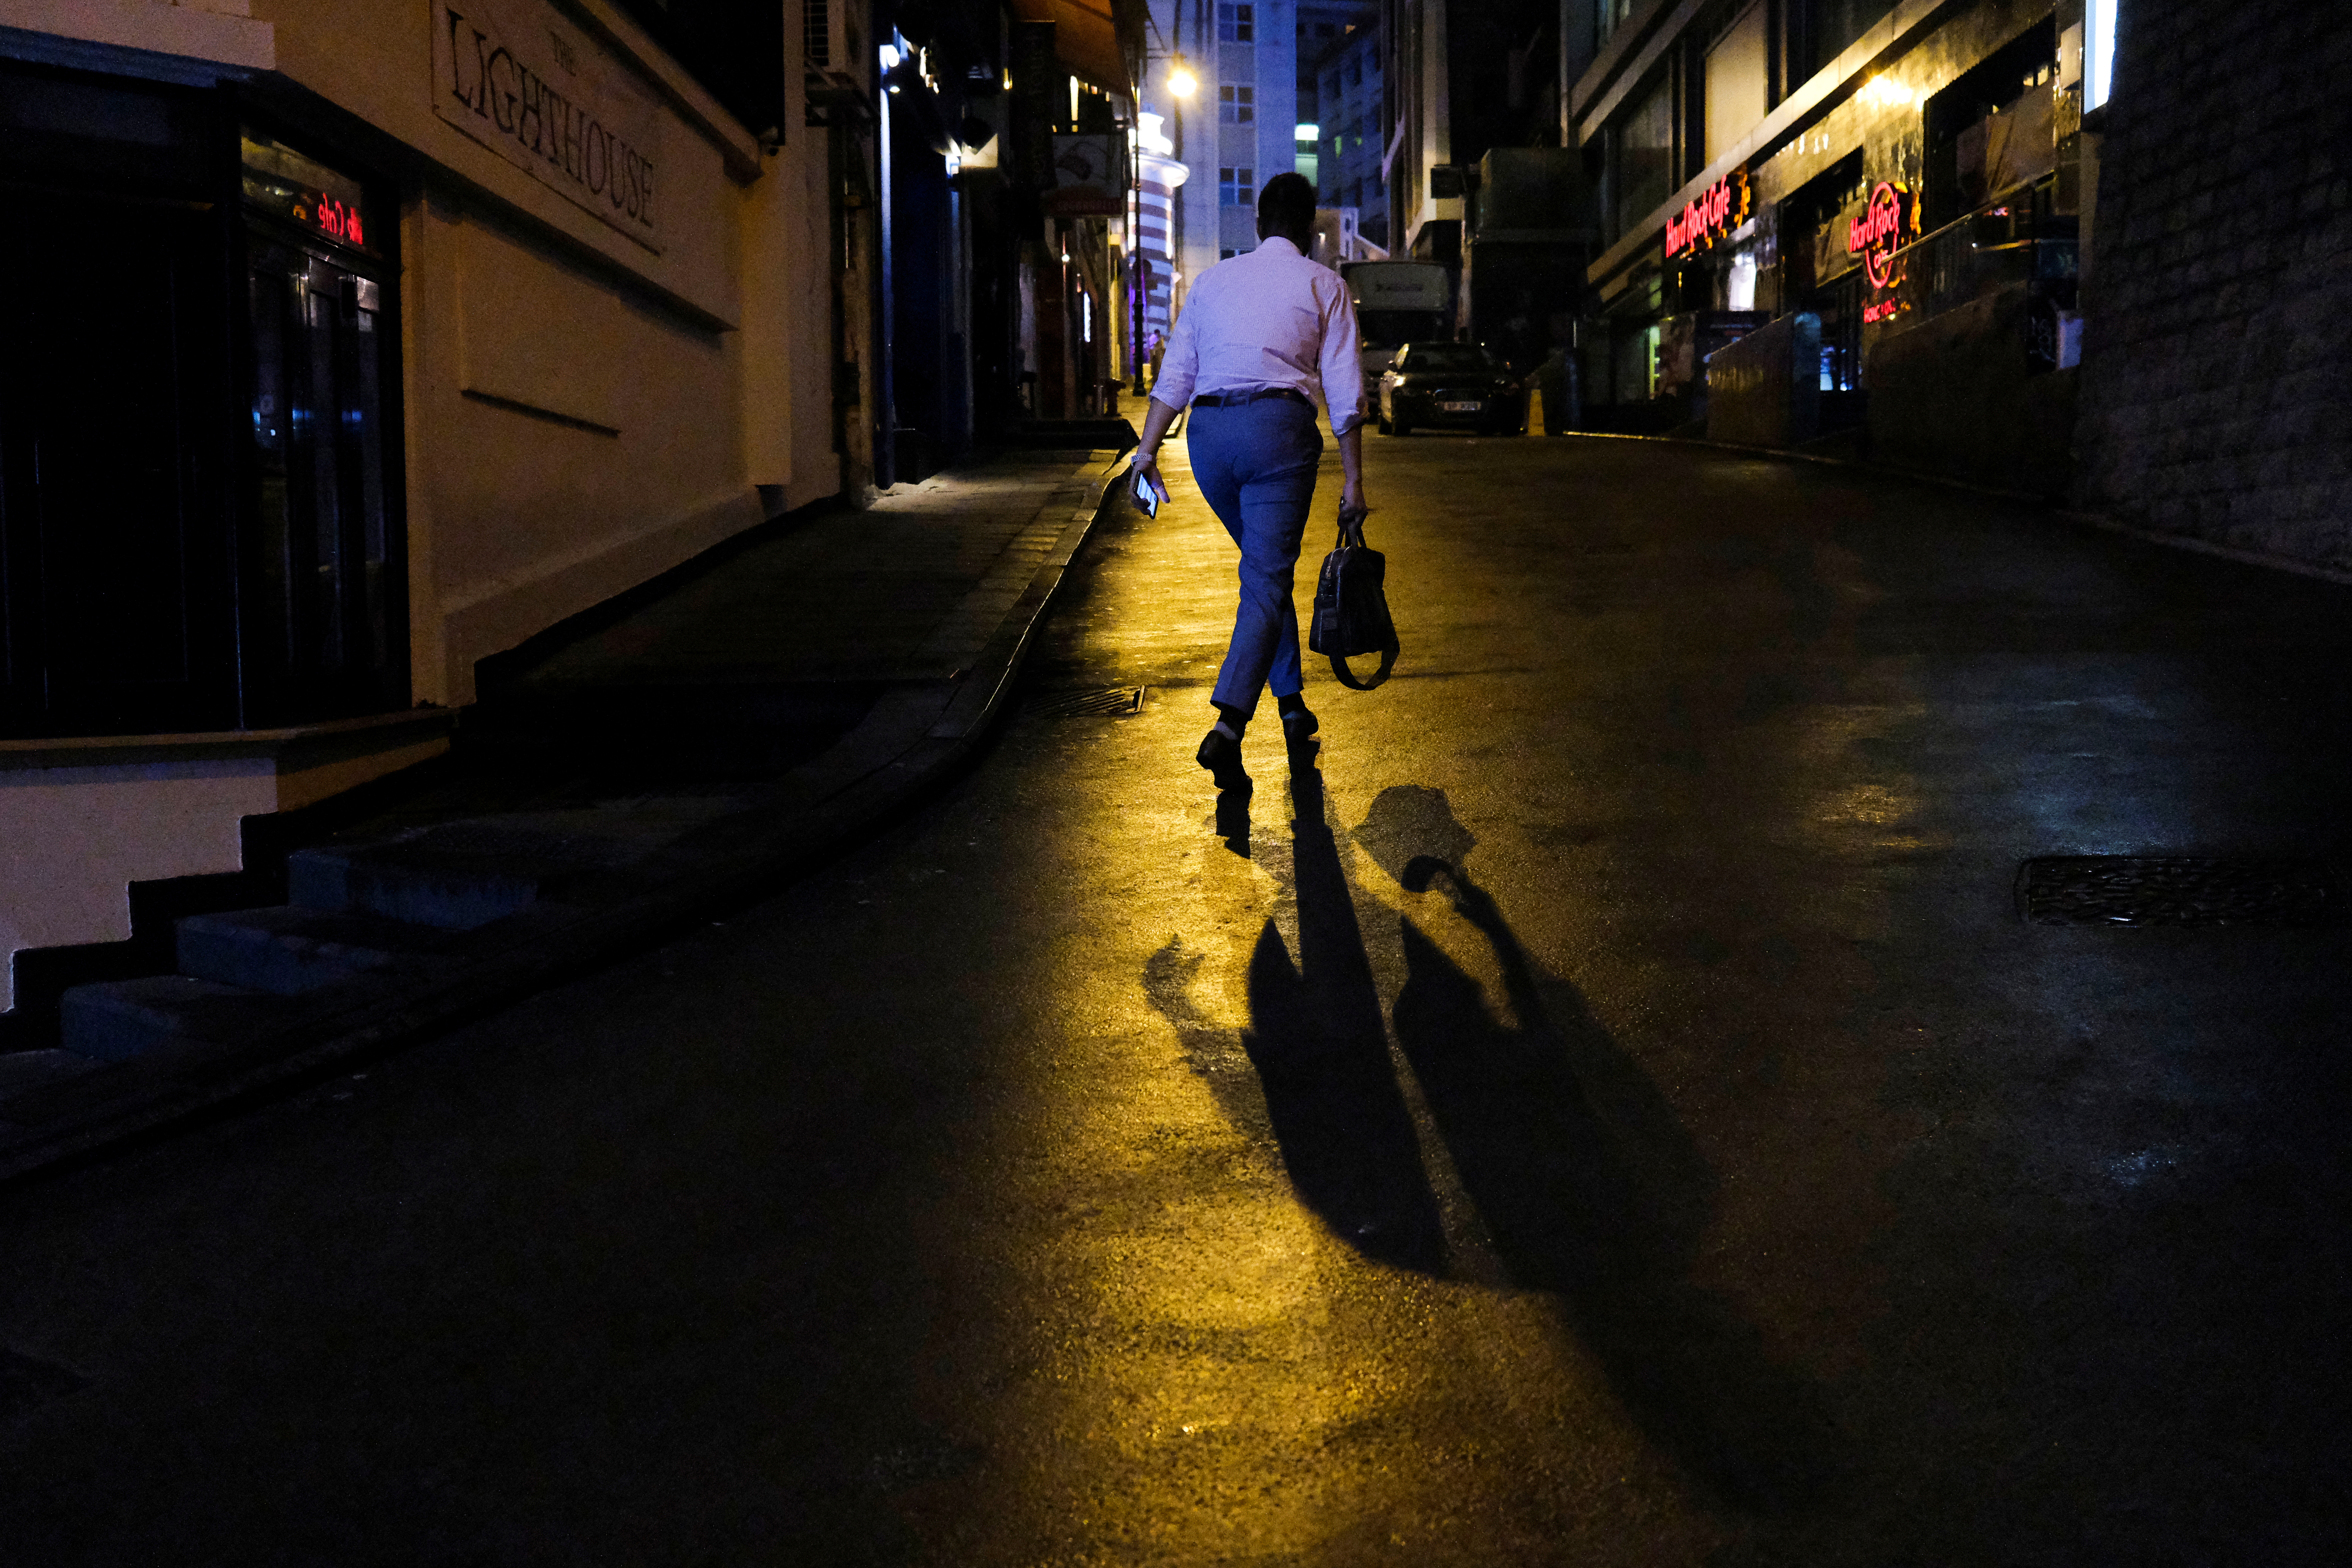 A person walks outside an almost empty pub area in Lan Kwai Fong on March 20 following the novel coronavirus outbreak. Authorities have reported more infections linked to popular nighttime activities in the area. Photo: Reuters